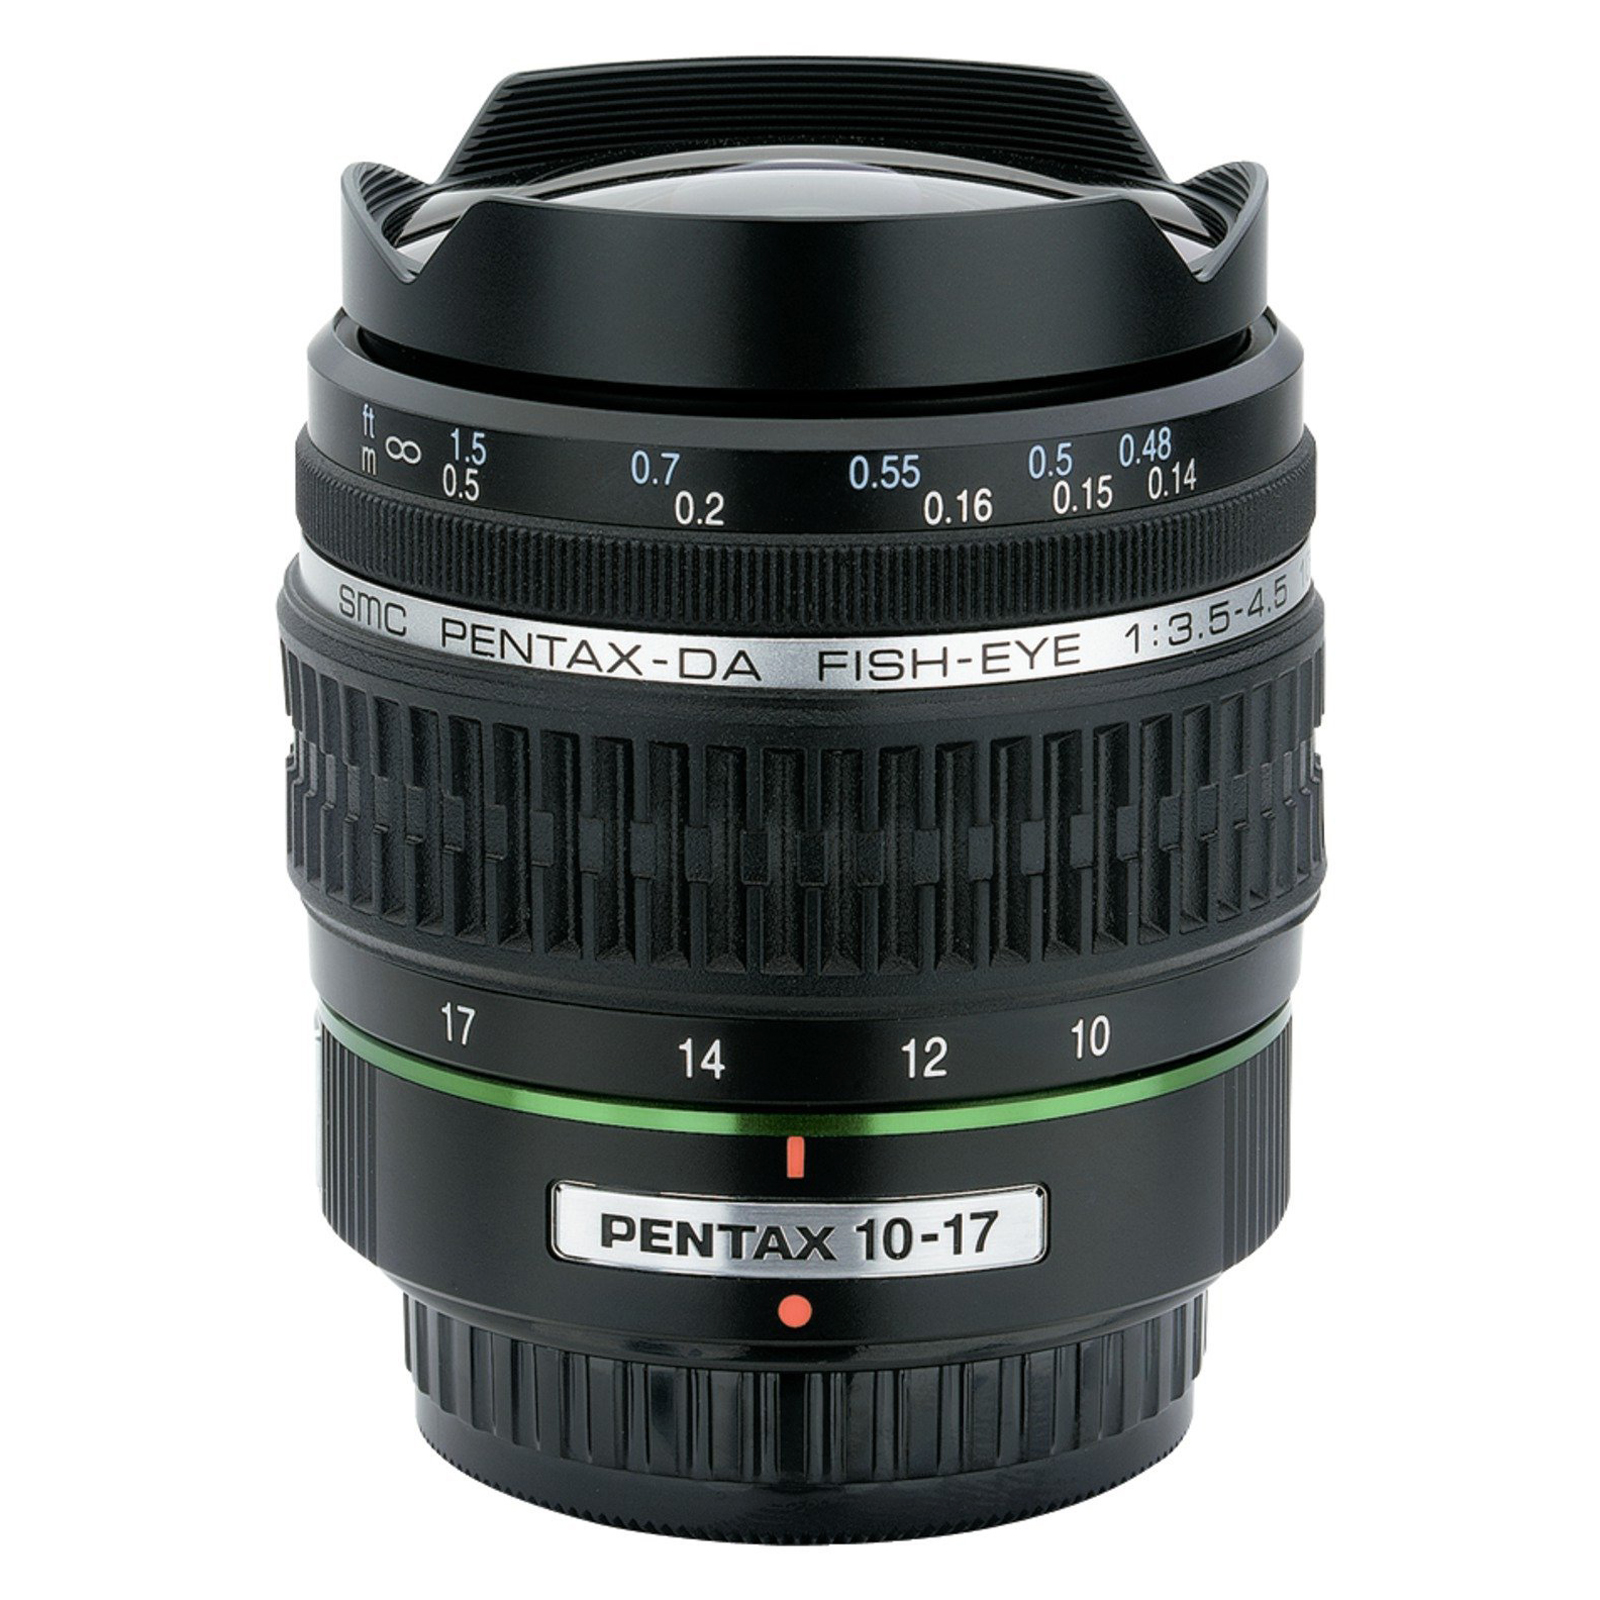 PENTAX DA 10-17mm f/3.5-4.5 ED (IF) Fish-Eye Lens for Pentax Digital SLR